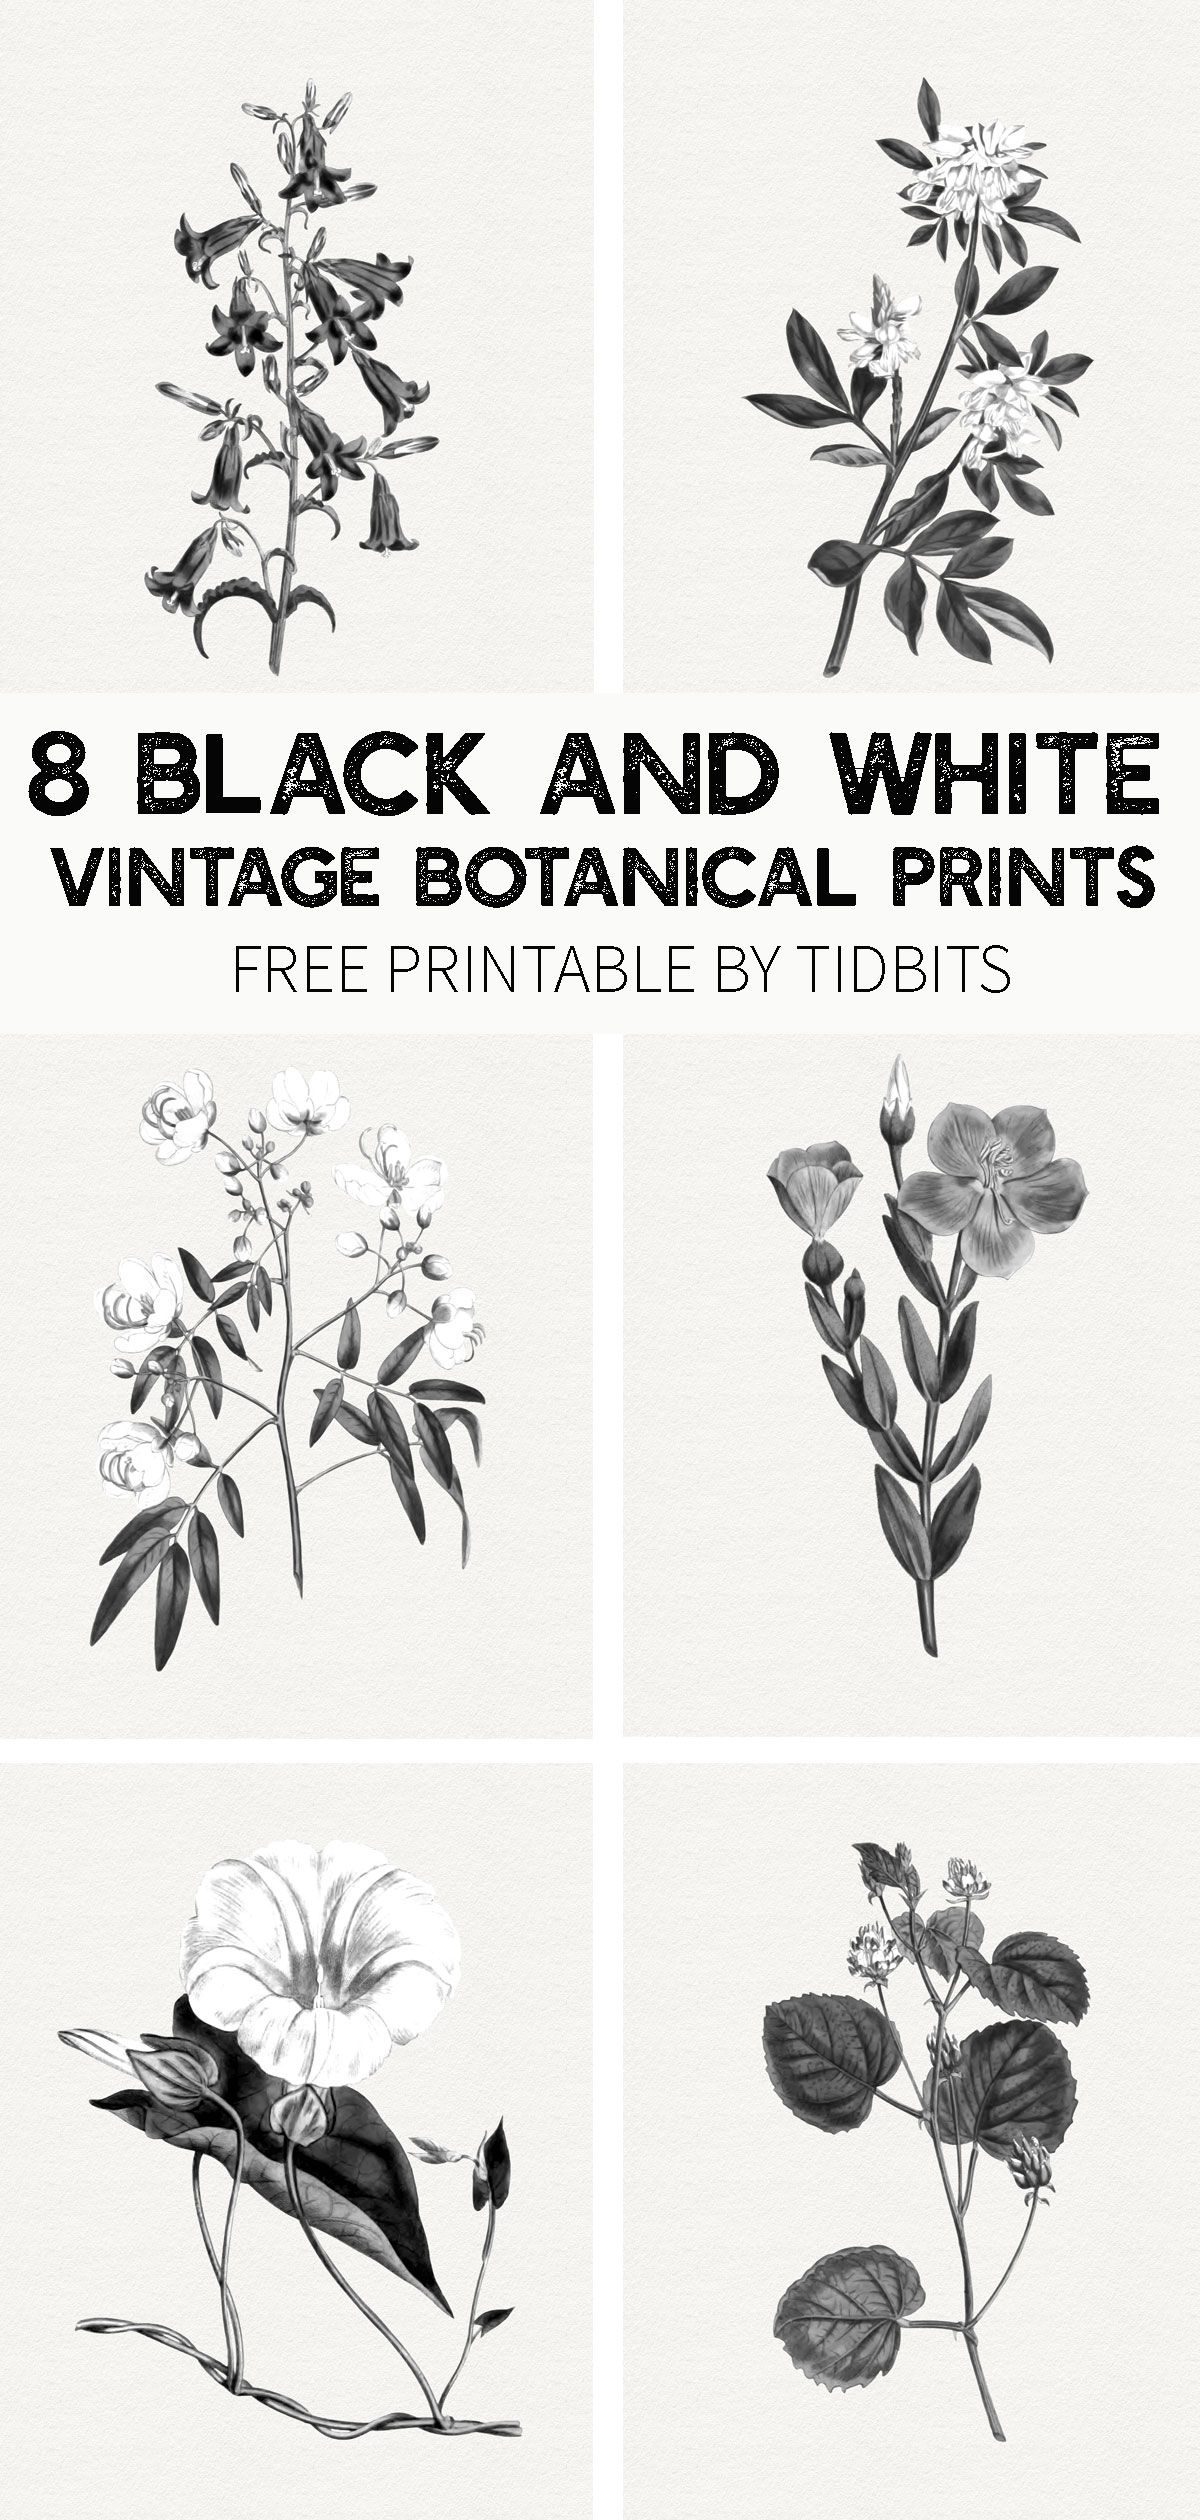 Beautiful and minimalistic wall art - grab your free black and white vintage botanical prints, by TIDBITS. #blackandwhite #botanical #botanicals #vintage #vintagebotanicals #camitidbits #blackandwhitebotanicals #botanicalprints #botanicalsprintable #printable #freeprintables